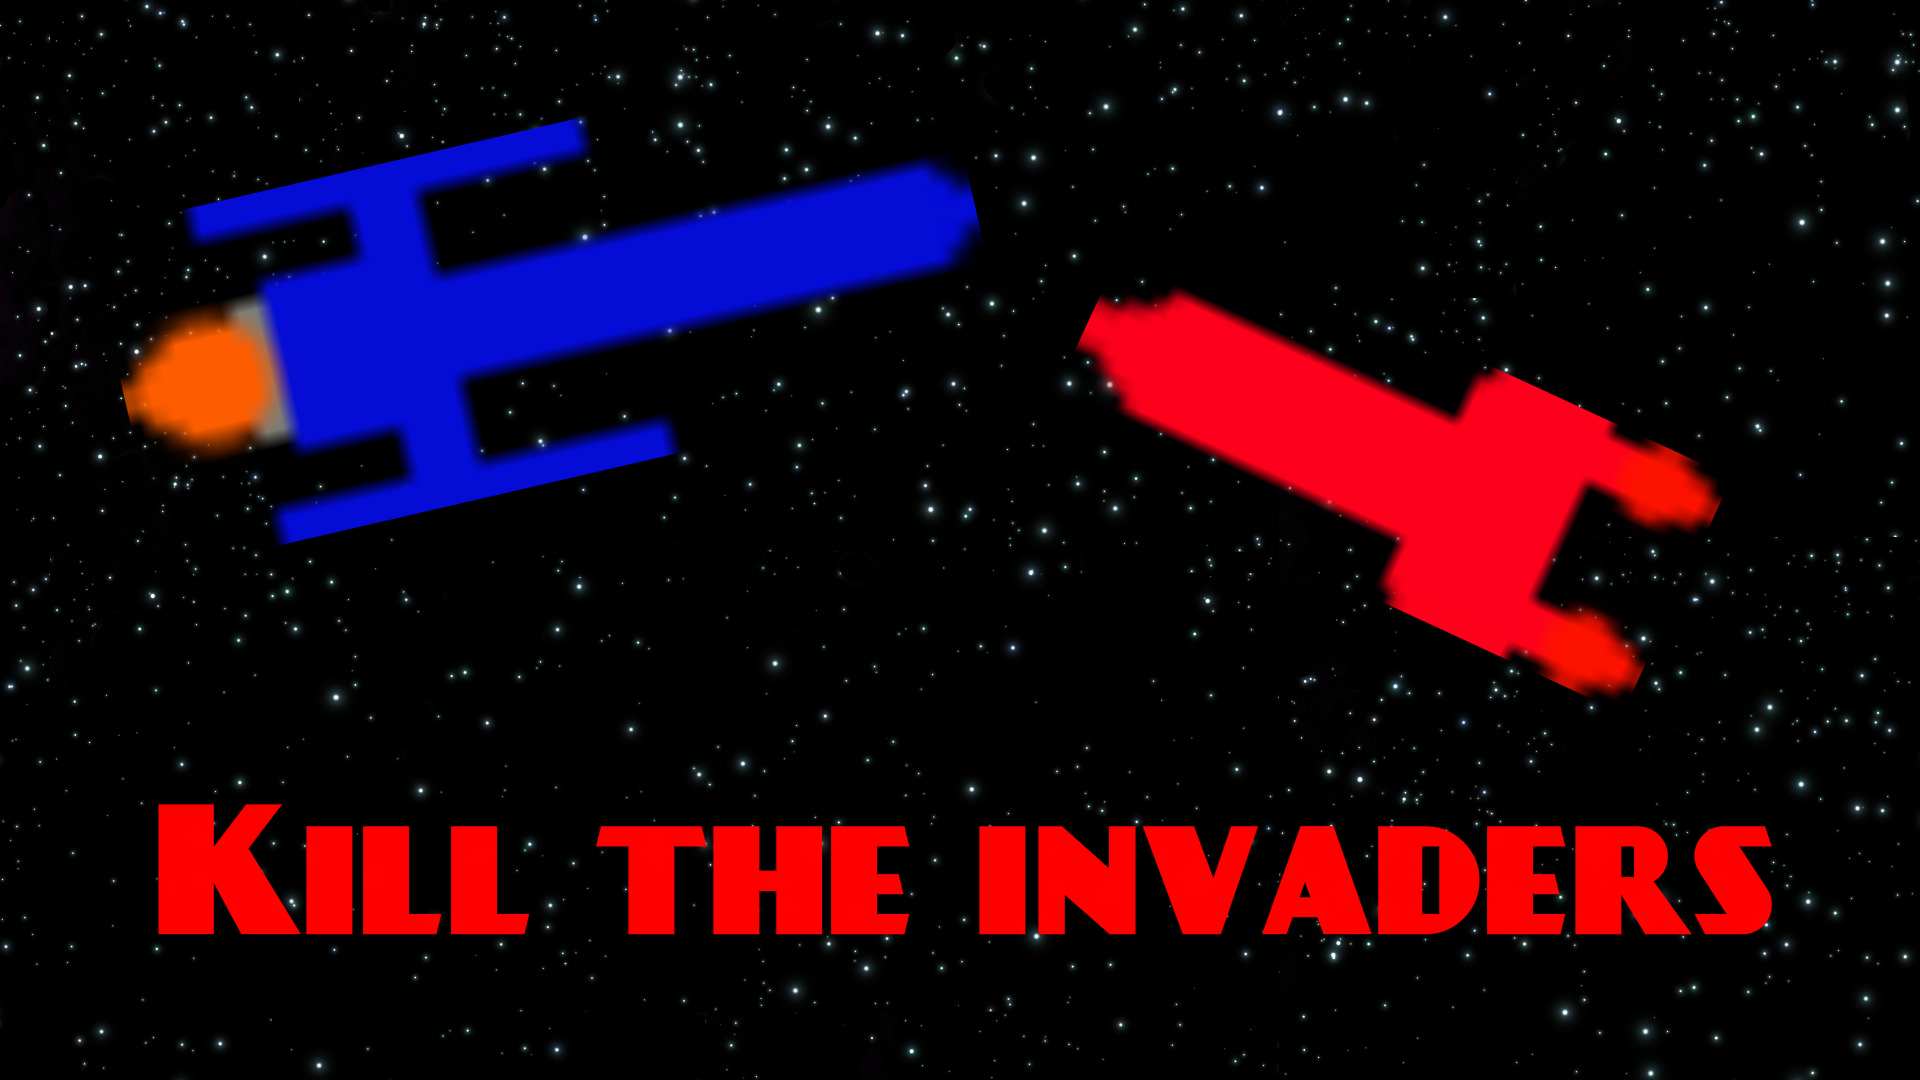 Kill The Invaders